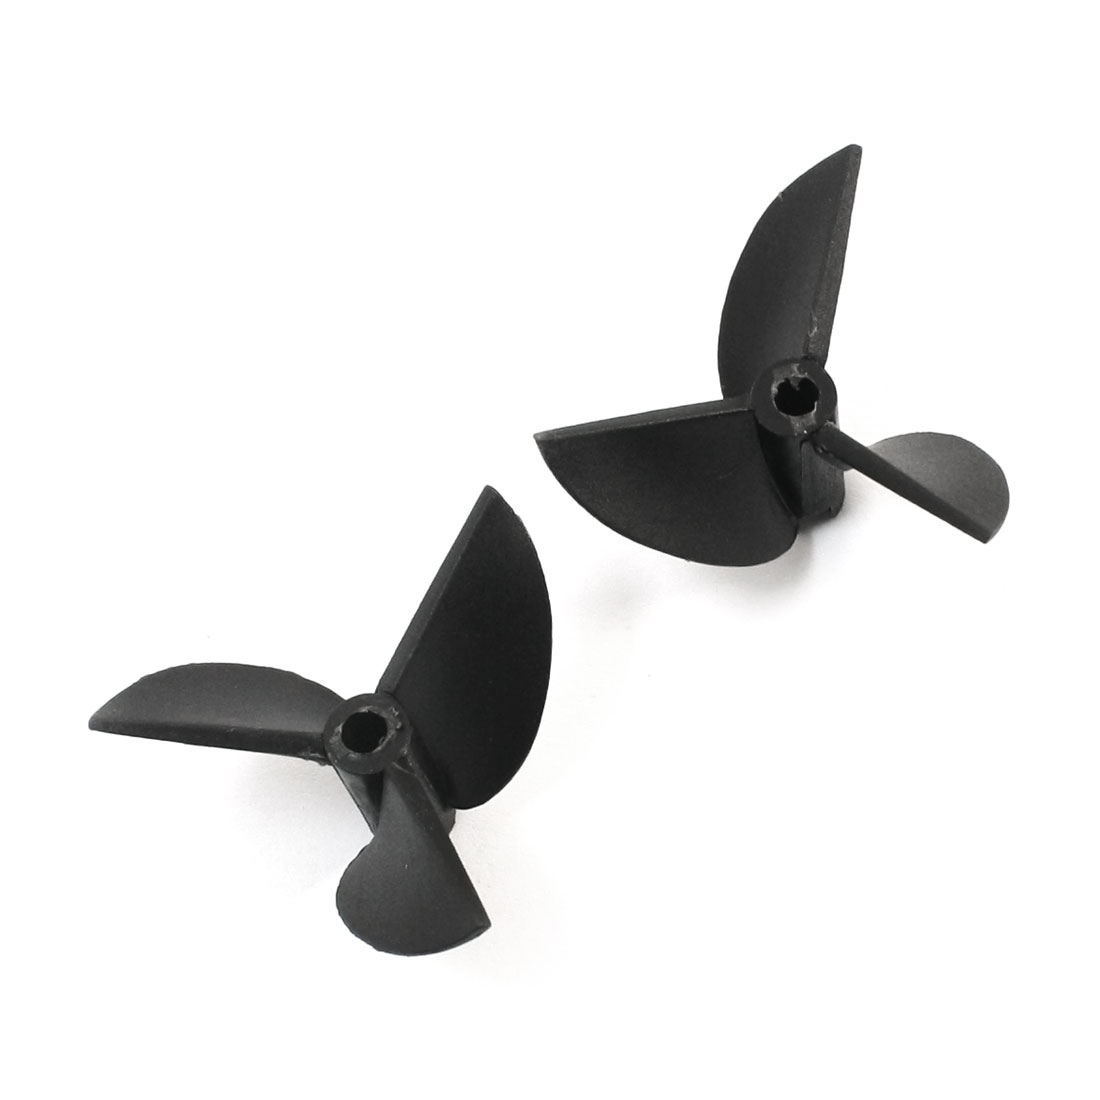 "Pair 3519 35mm Dia P/D1.9 Black Plastic 3 Vanes CW/CCW Propeller Prop for 1/8"" Shaft RC Ship Boat Model"